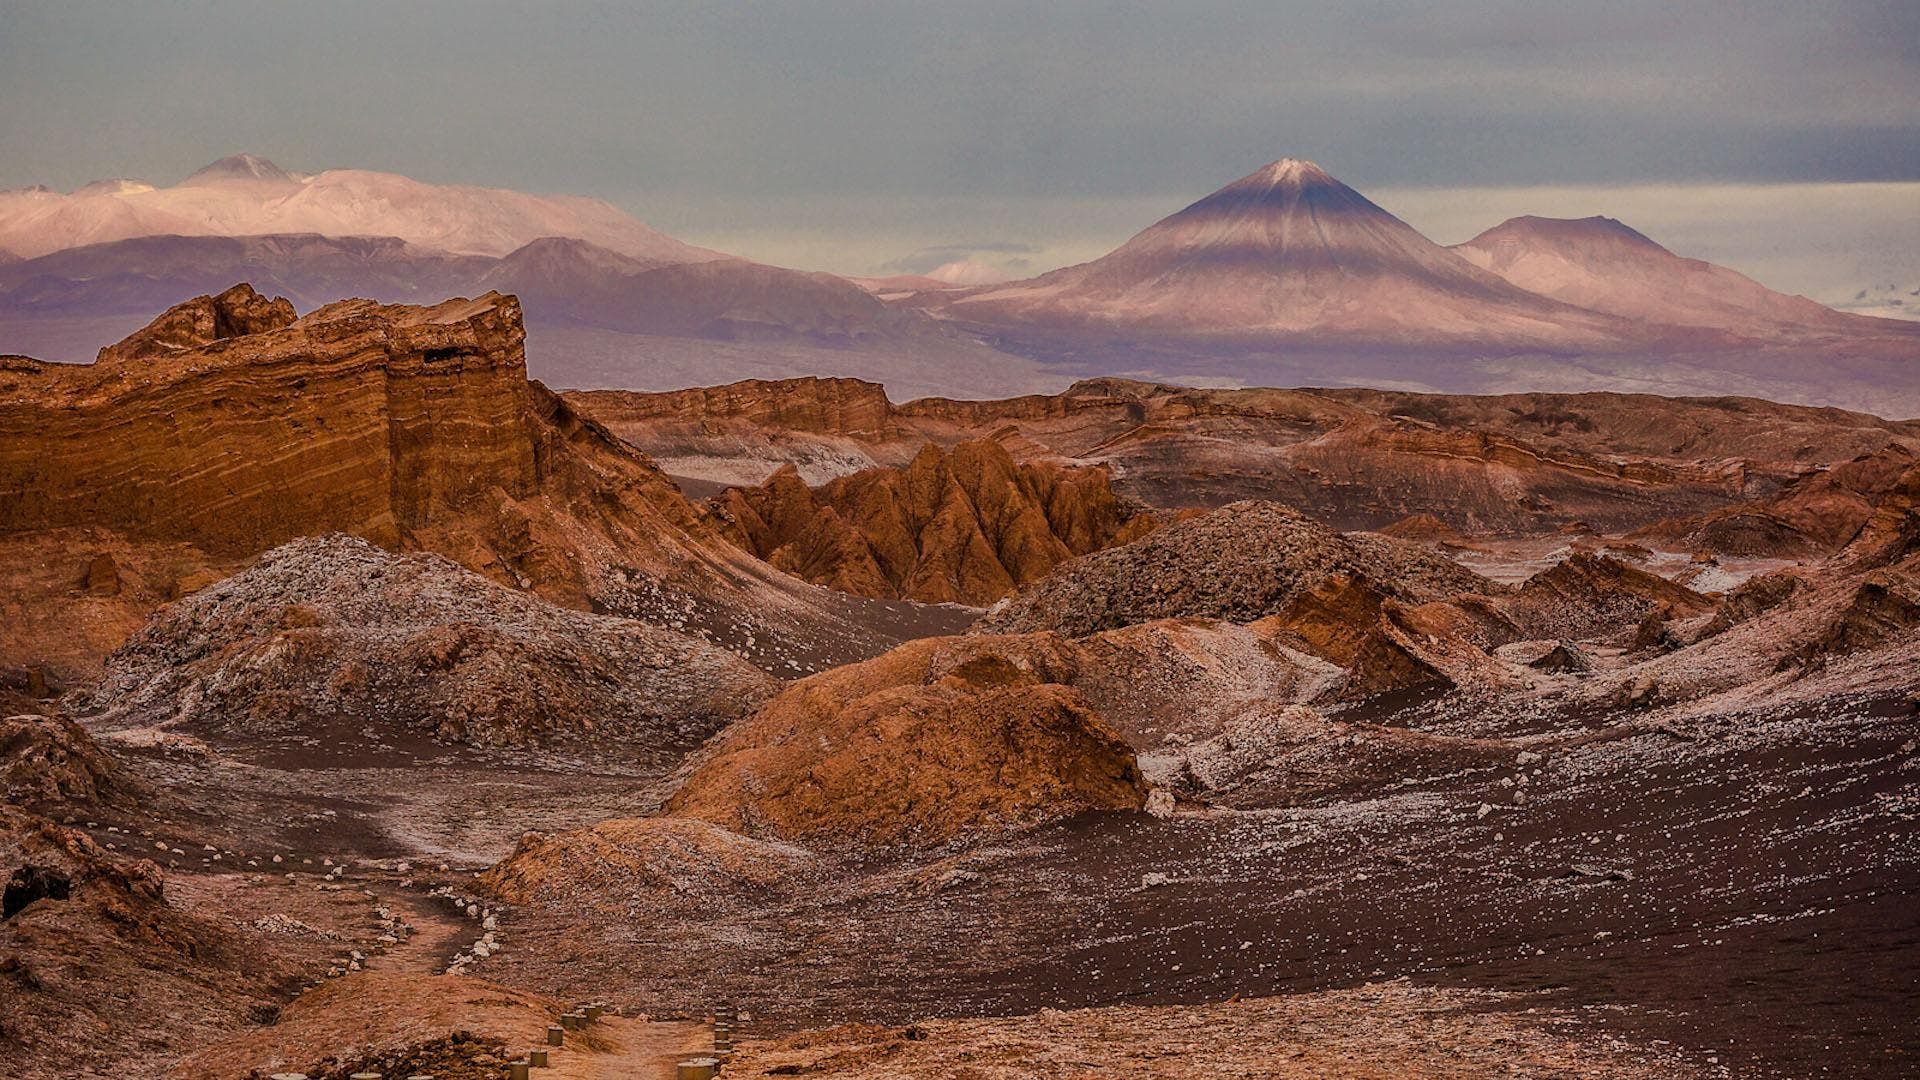 Sand Copenhagen Discover: Chile's Atacama Desert - Lonely Planet Video